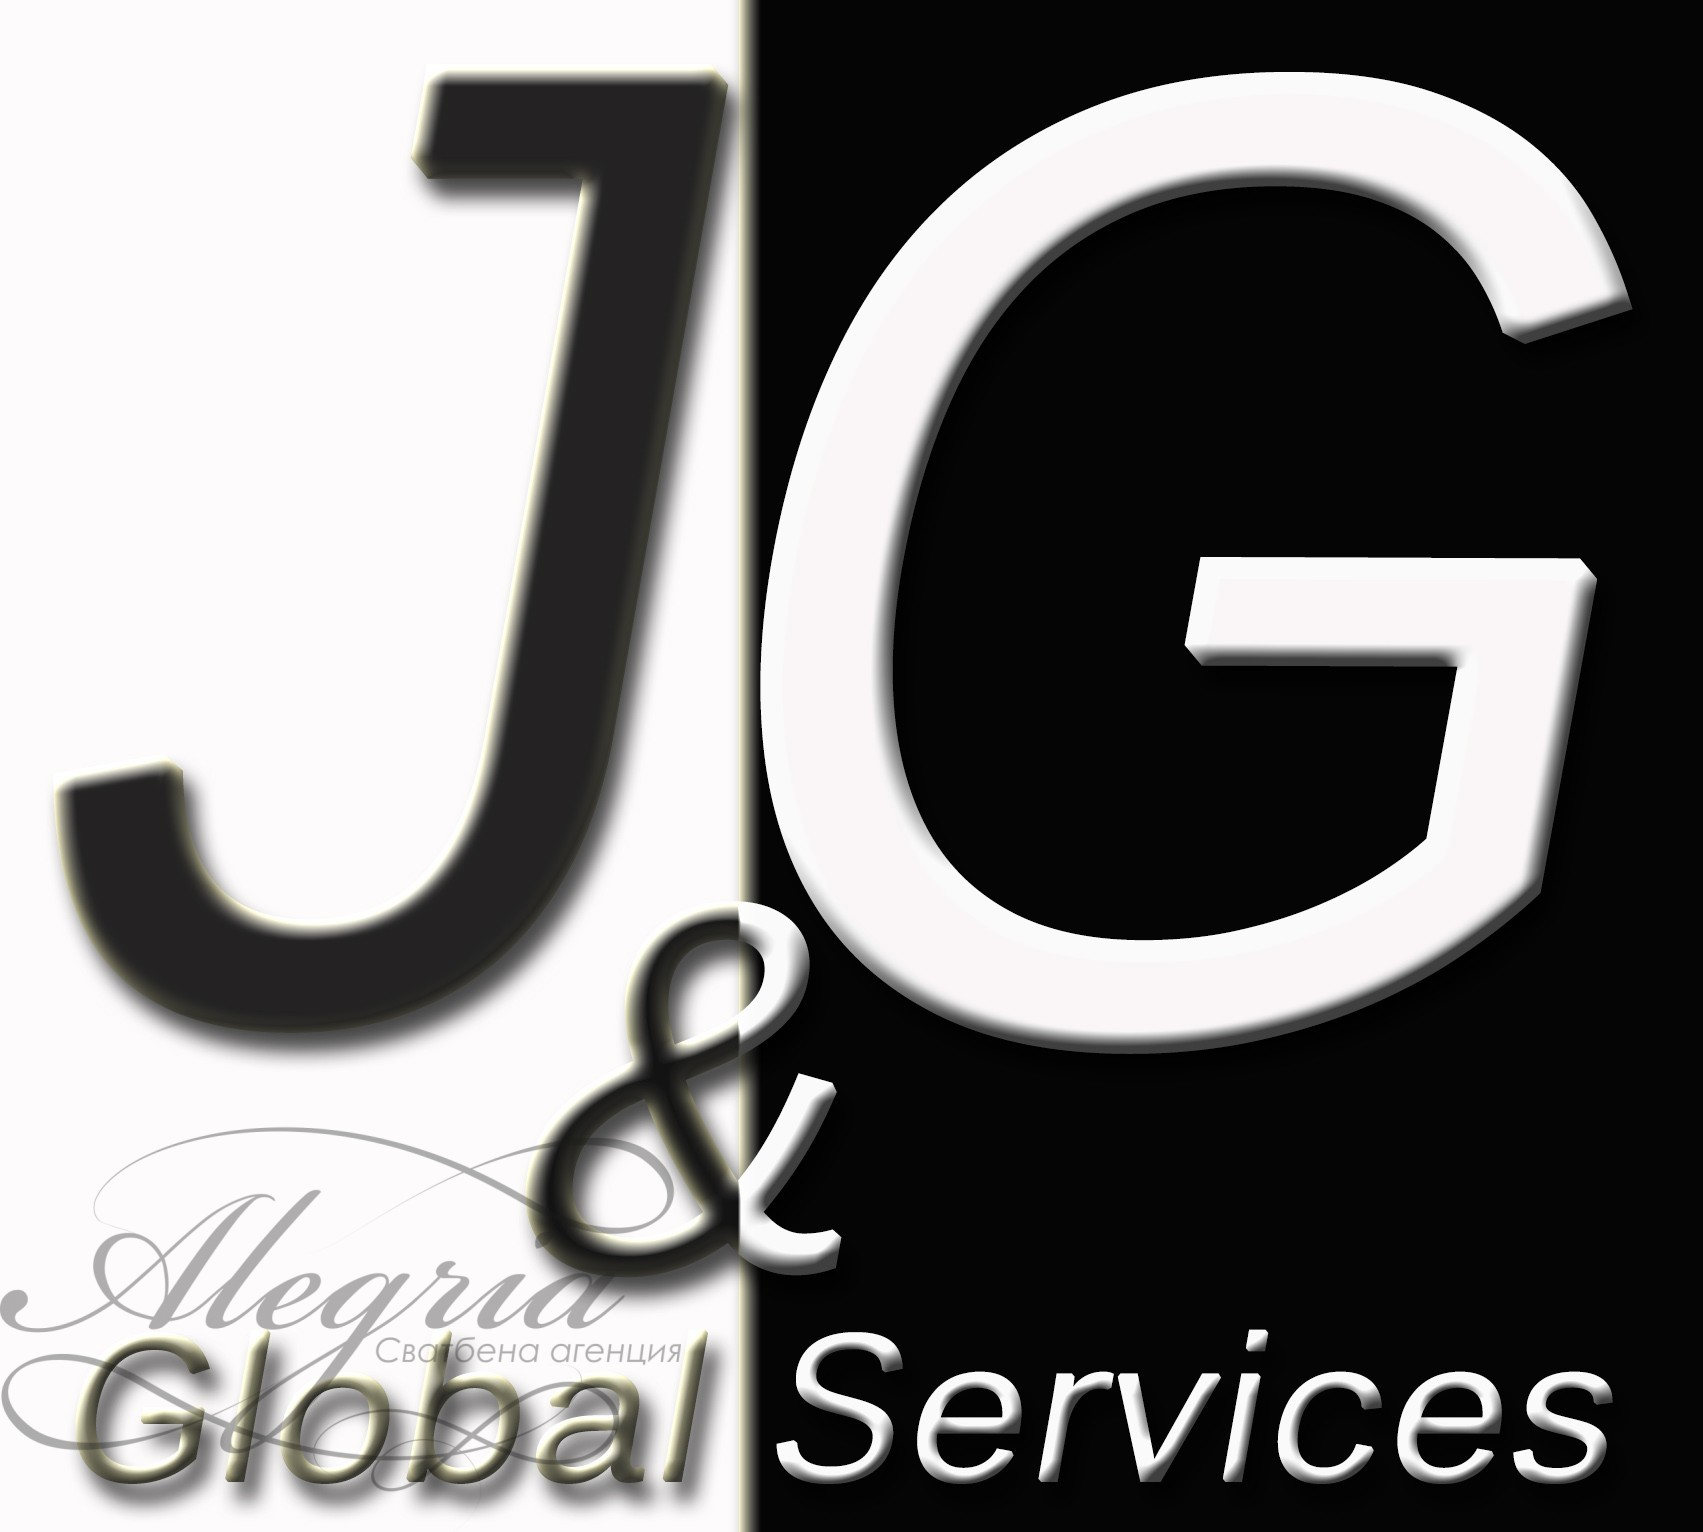 J&G Global Services